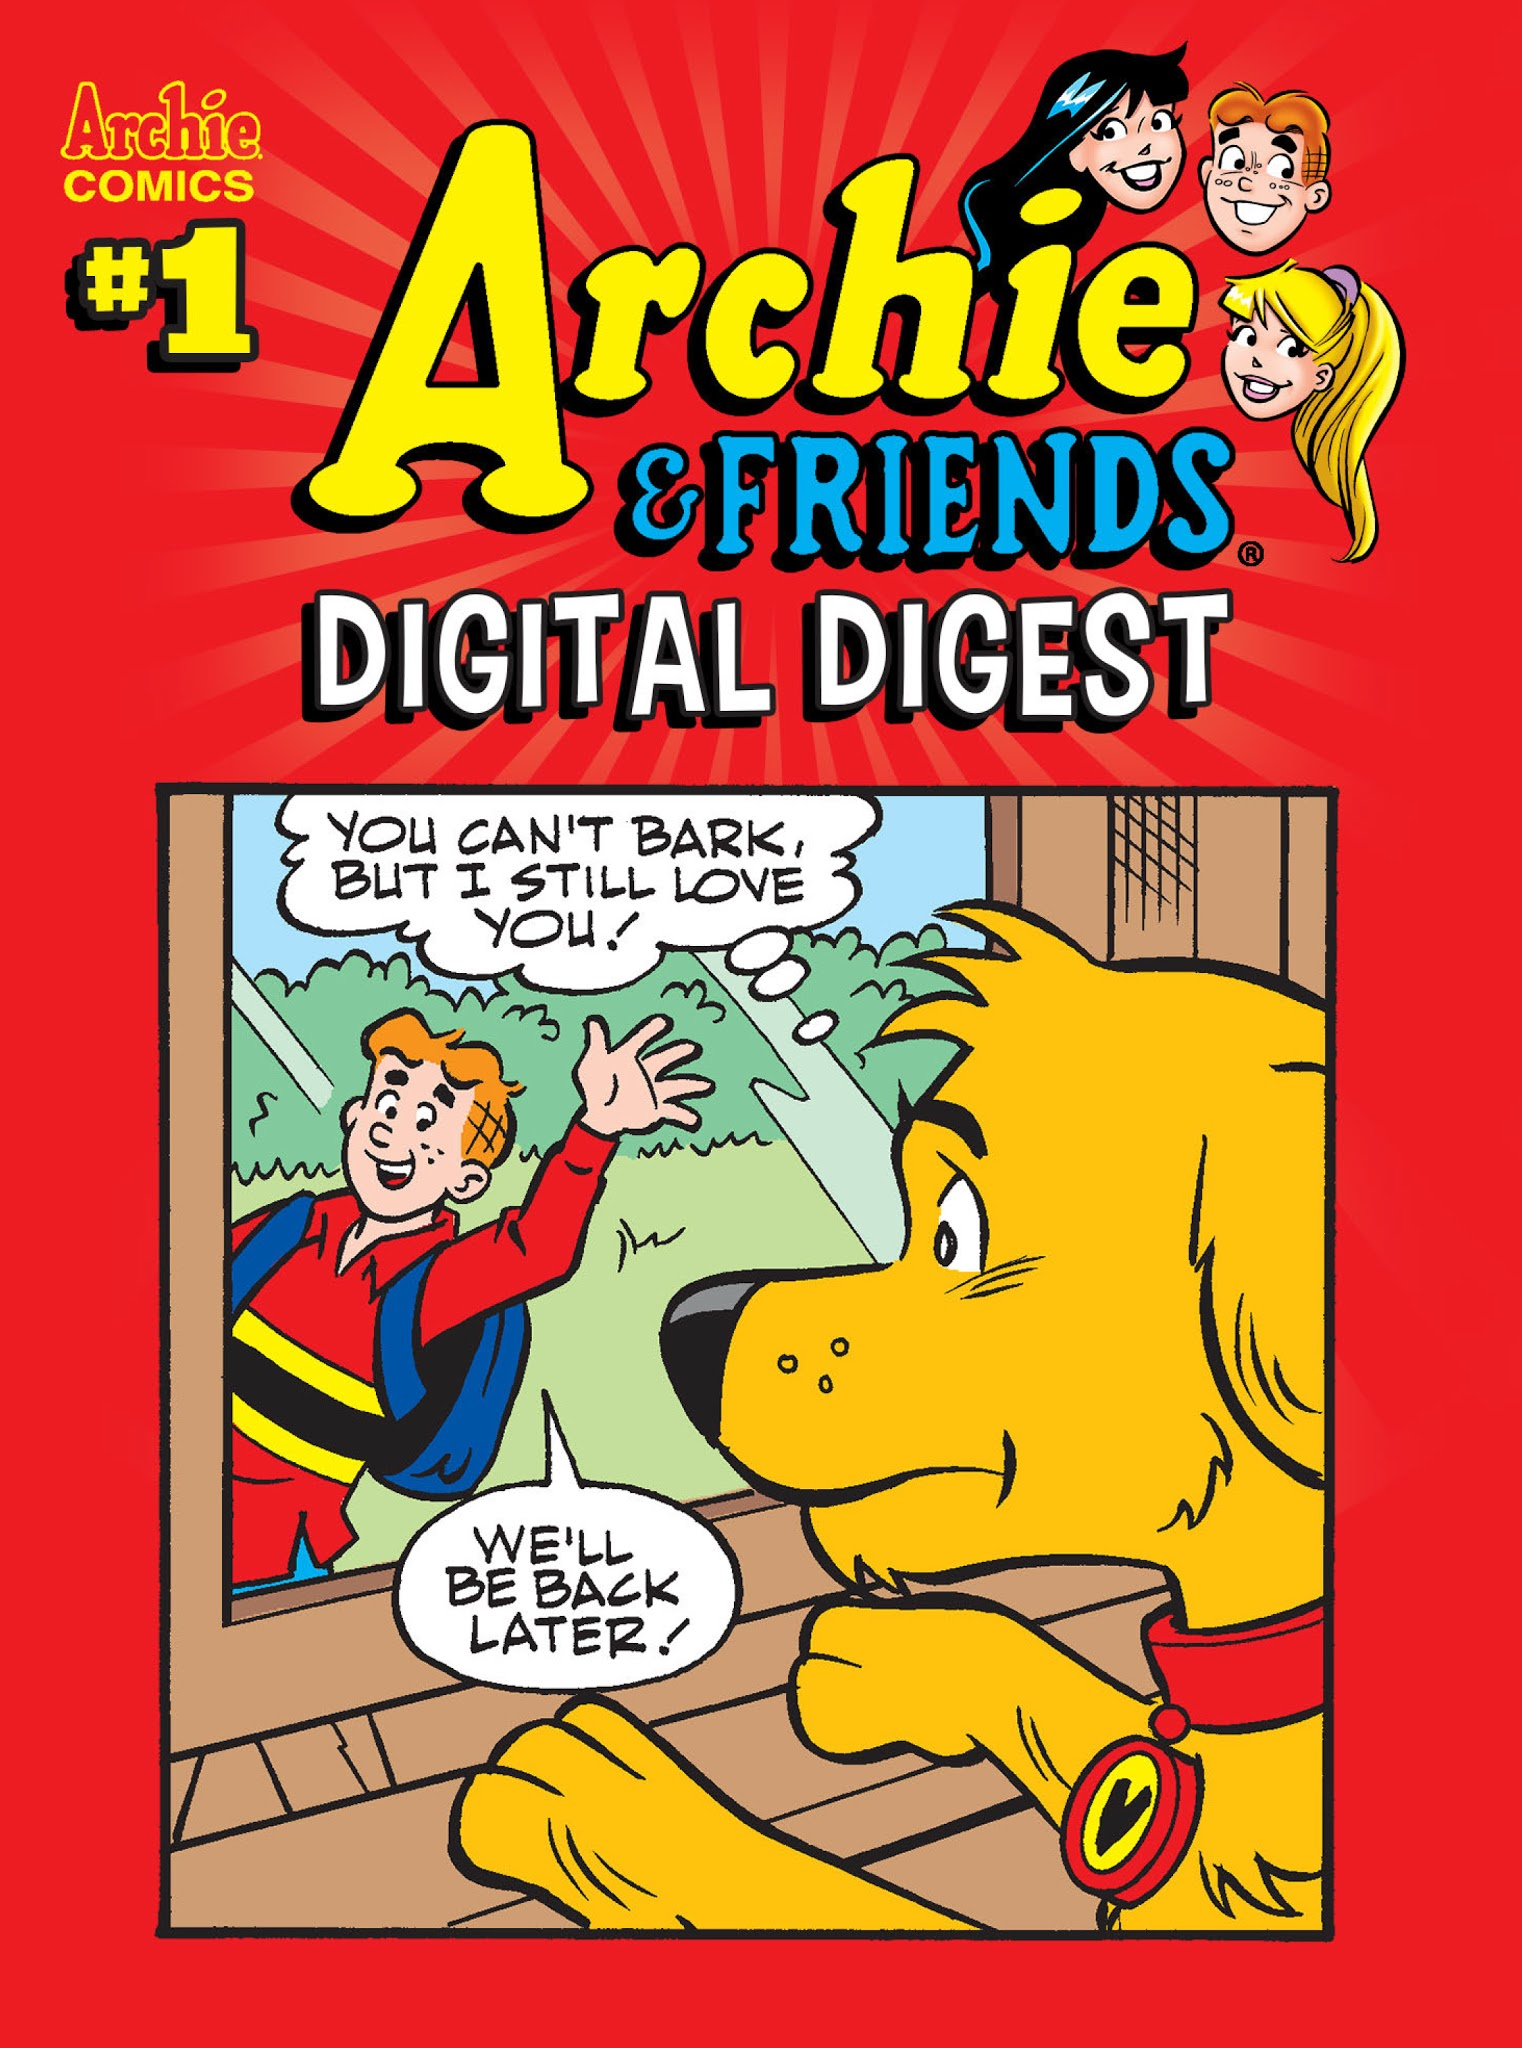 Archie & Friends Digital Digest 1 Page 1